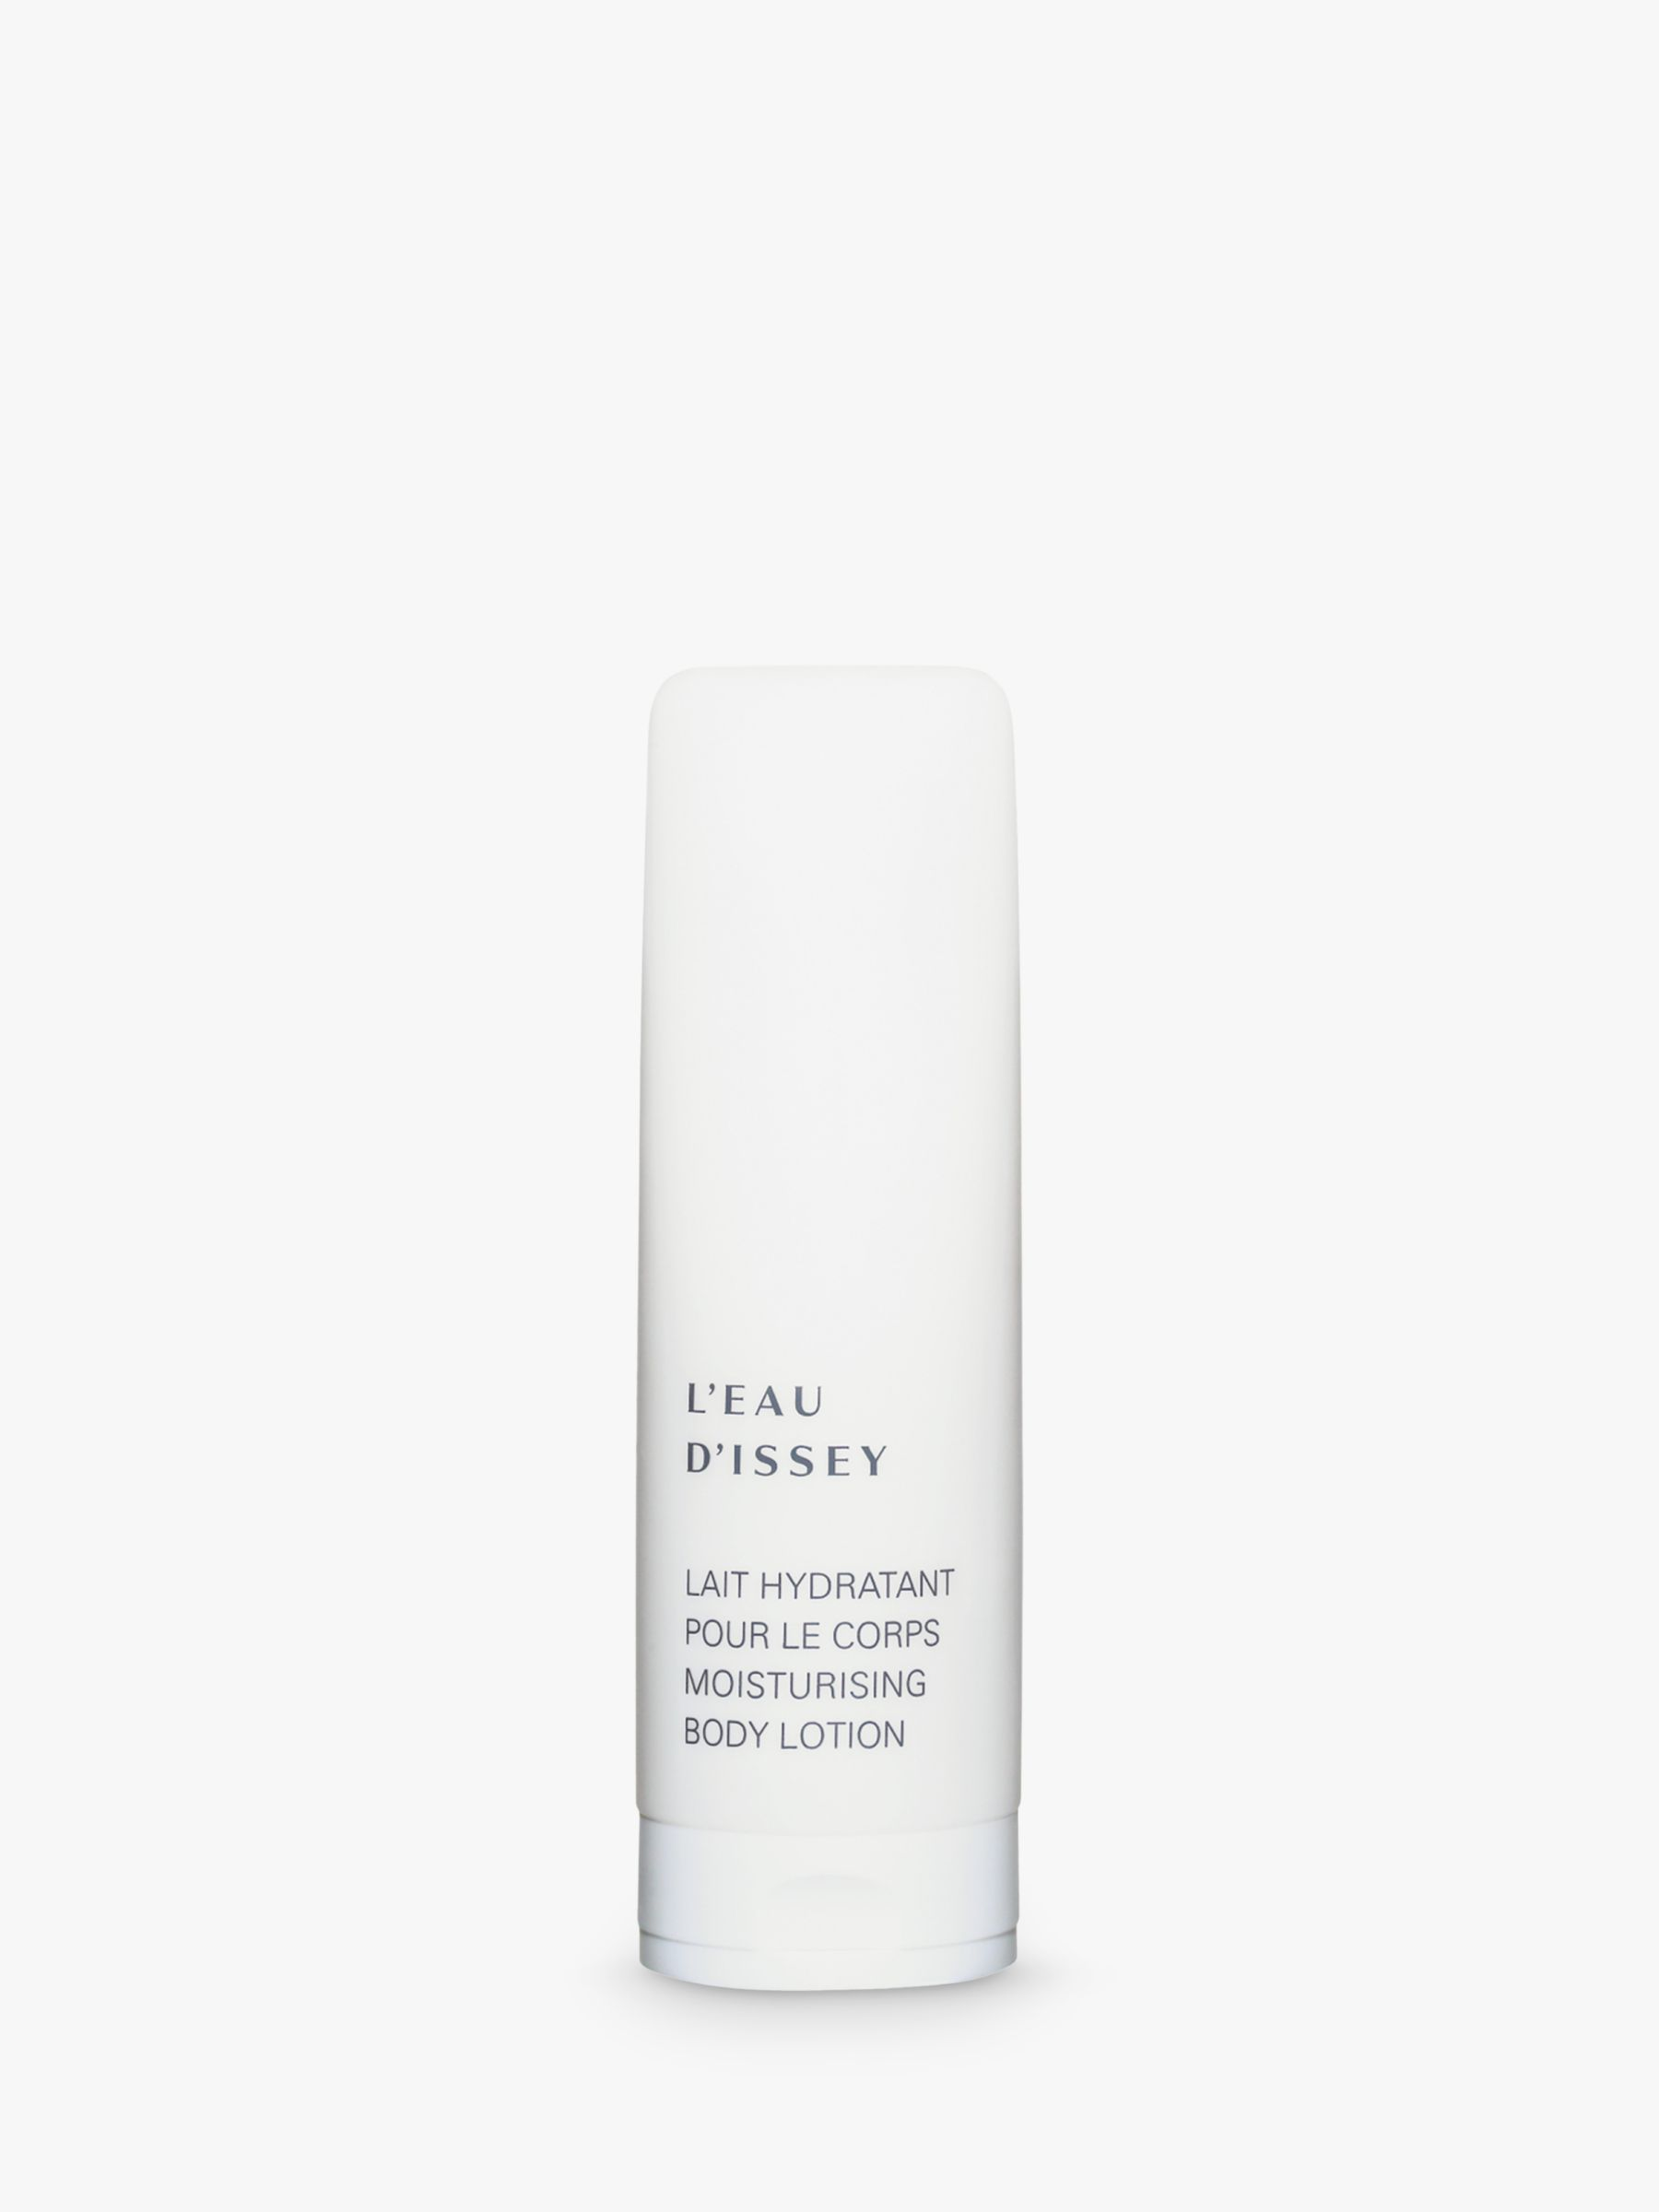 Issey Miyake Issey Miyake L'Eau d'Issey Body Lotion, 200ml